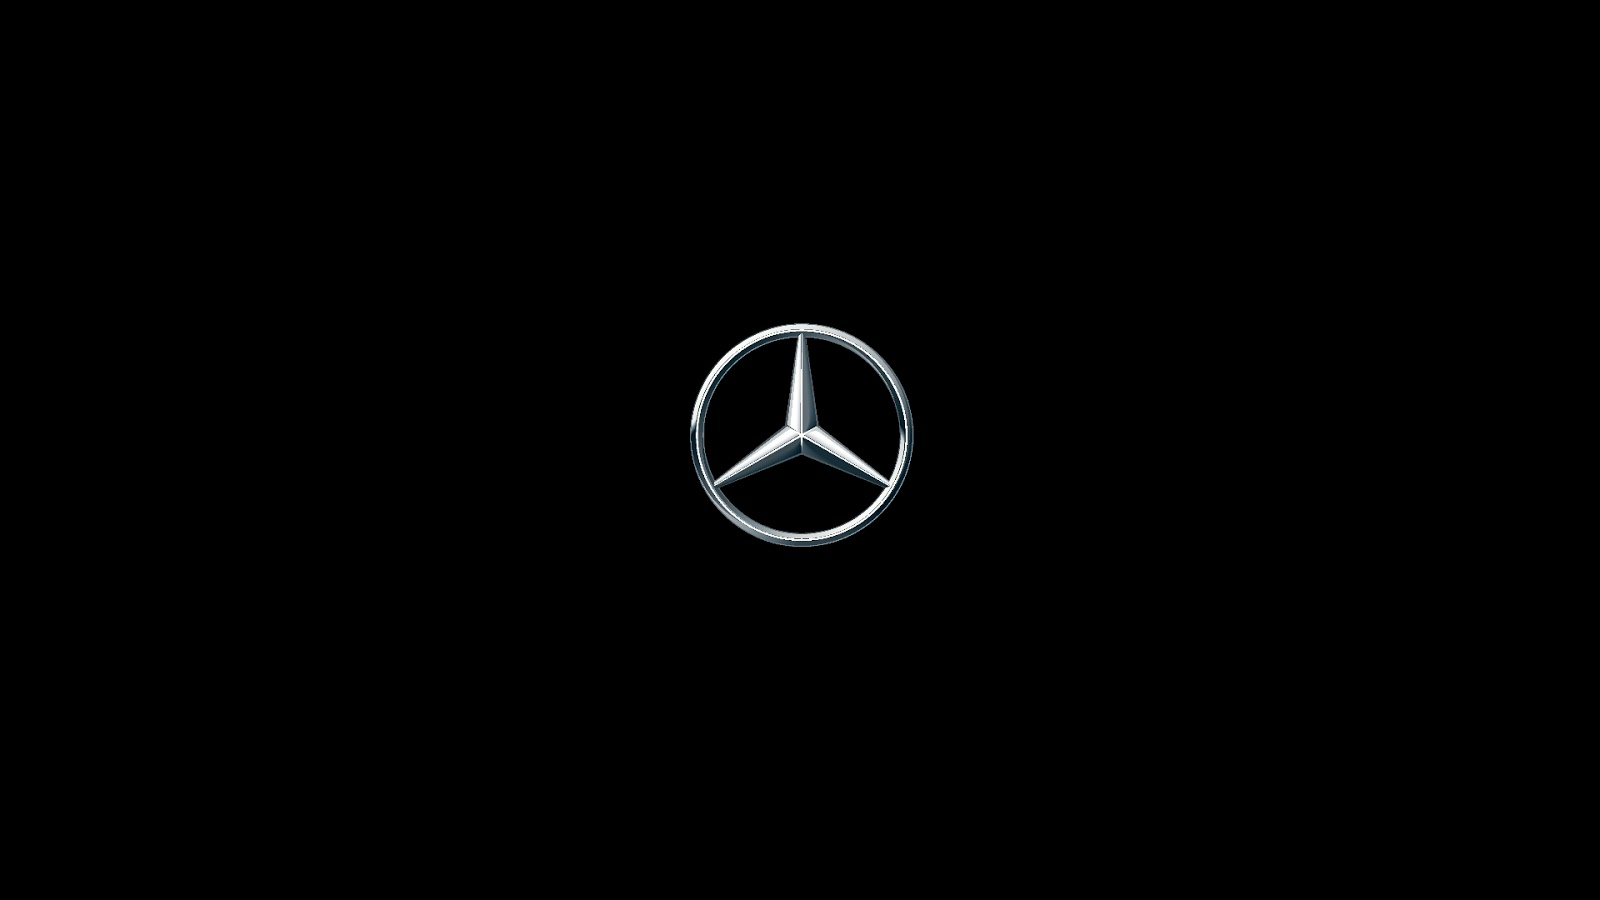 Mercedes benz logos in black background mercedes benz logos mercedes benz logos in black background which can be used as mercedes benz logos in black background this mercedes benz logos are having better image voltagebd Image collections